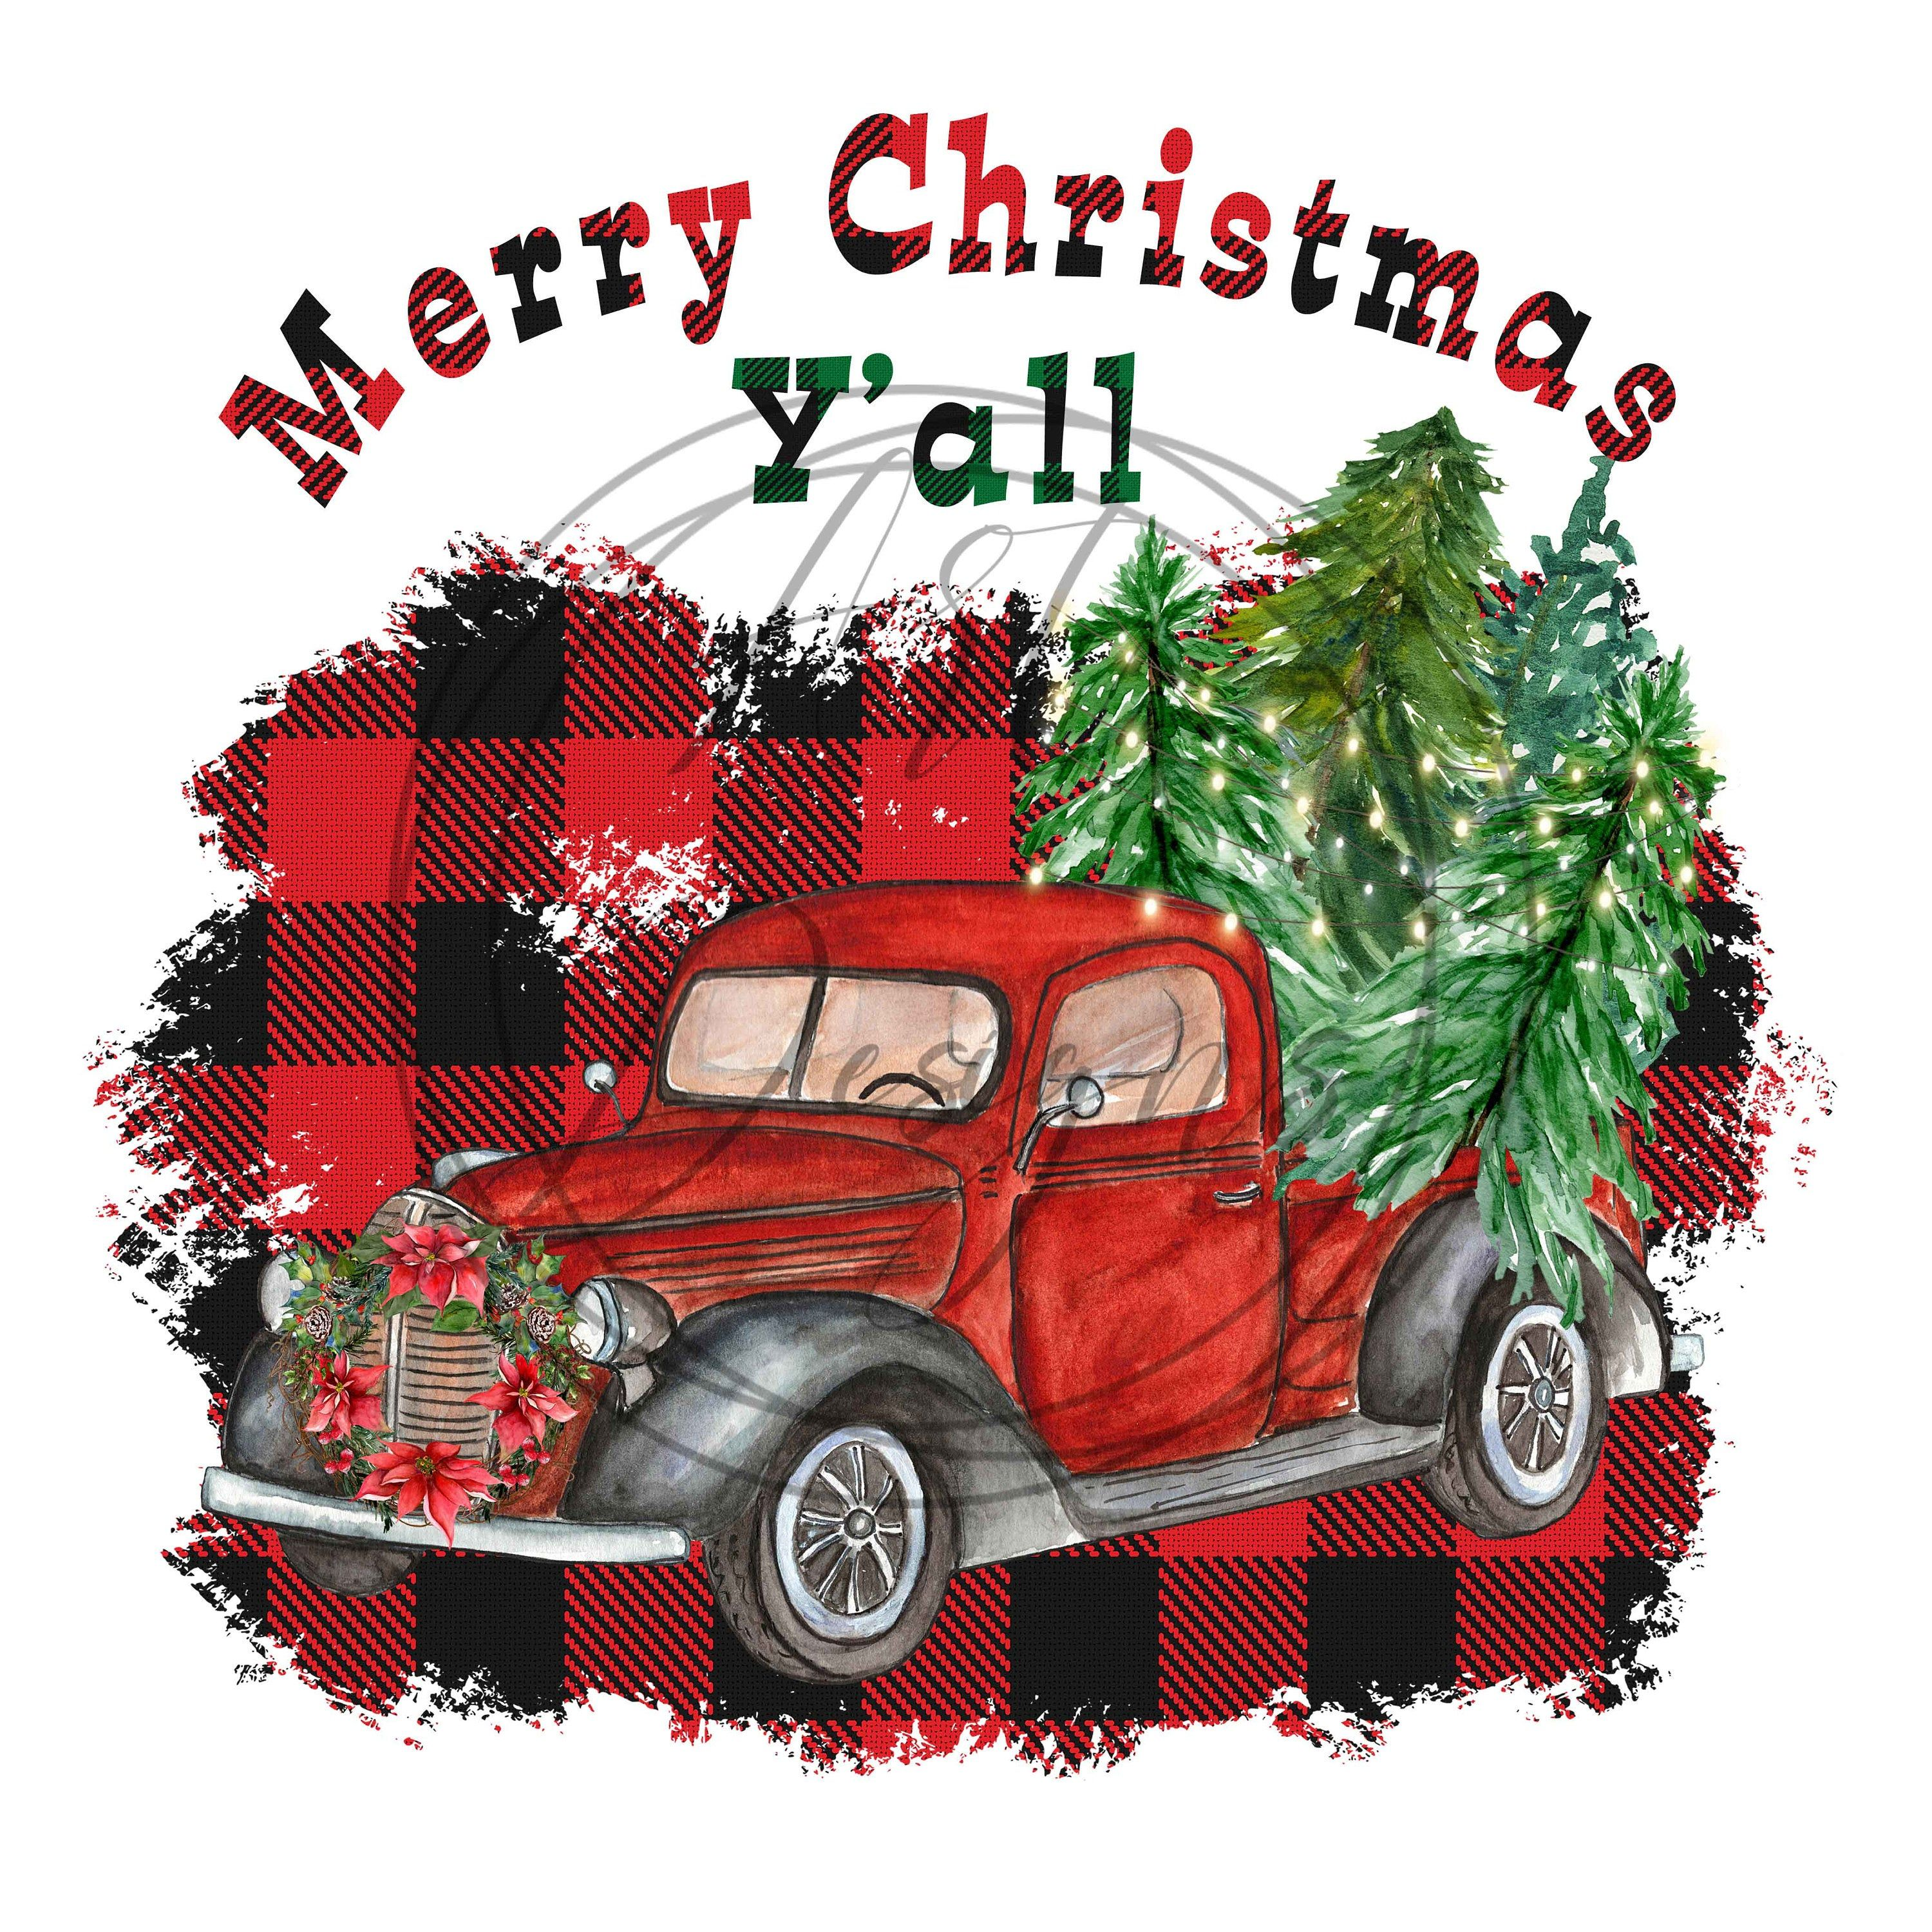 Merry Christmas Tree Truck Holiday Decals Christmas Truck Decal